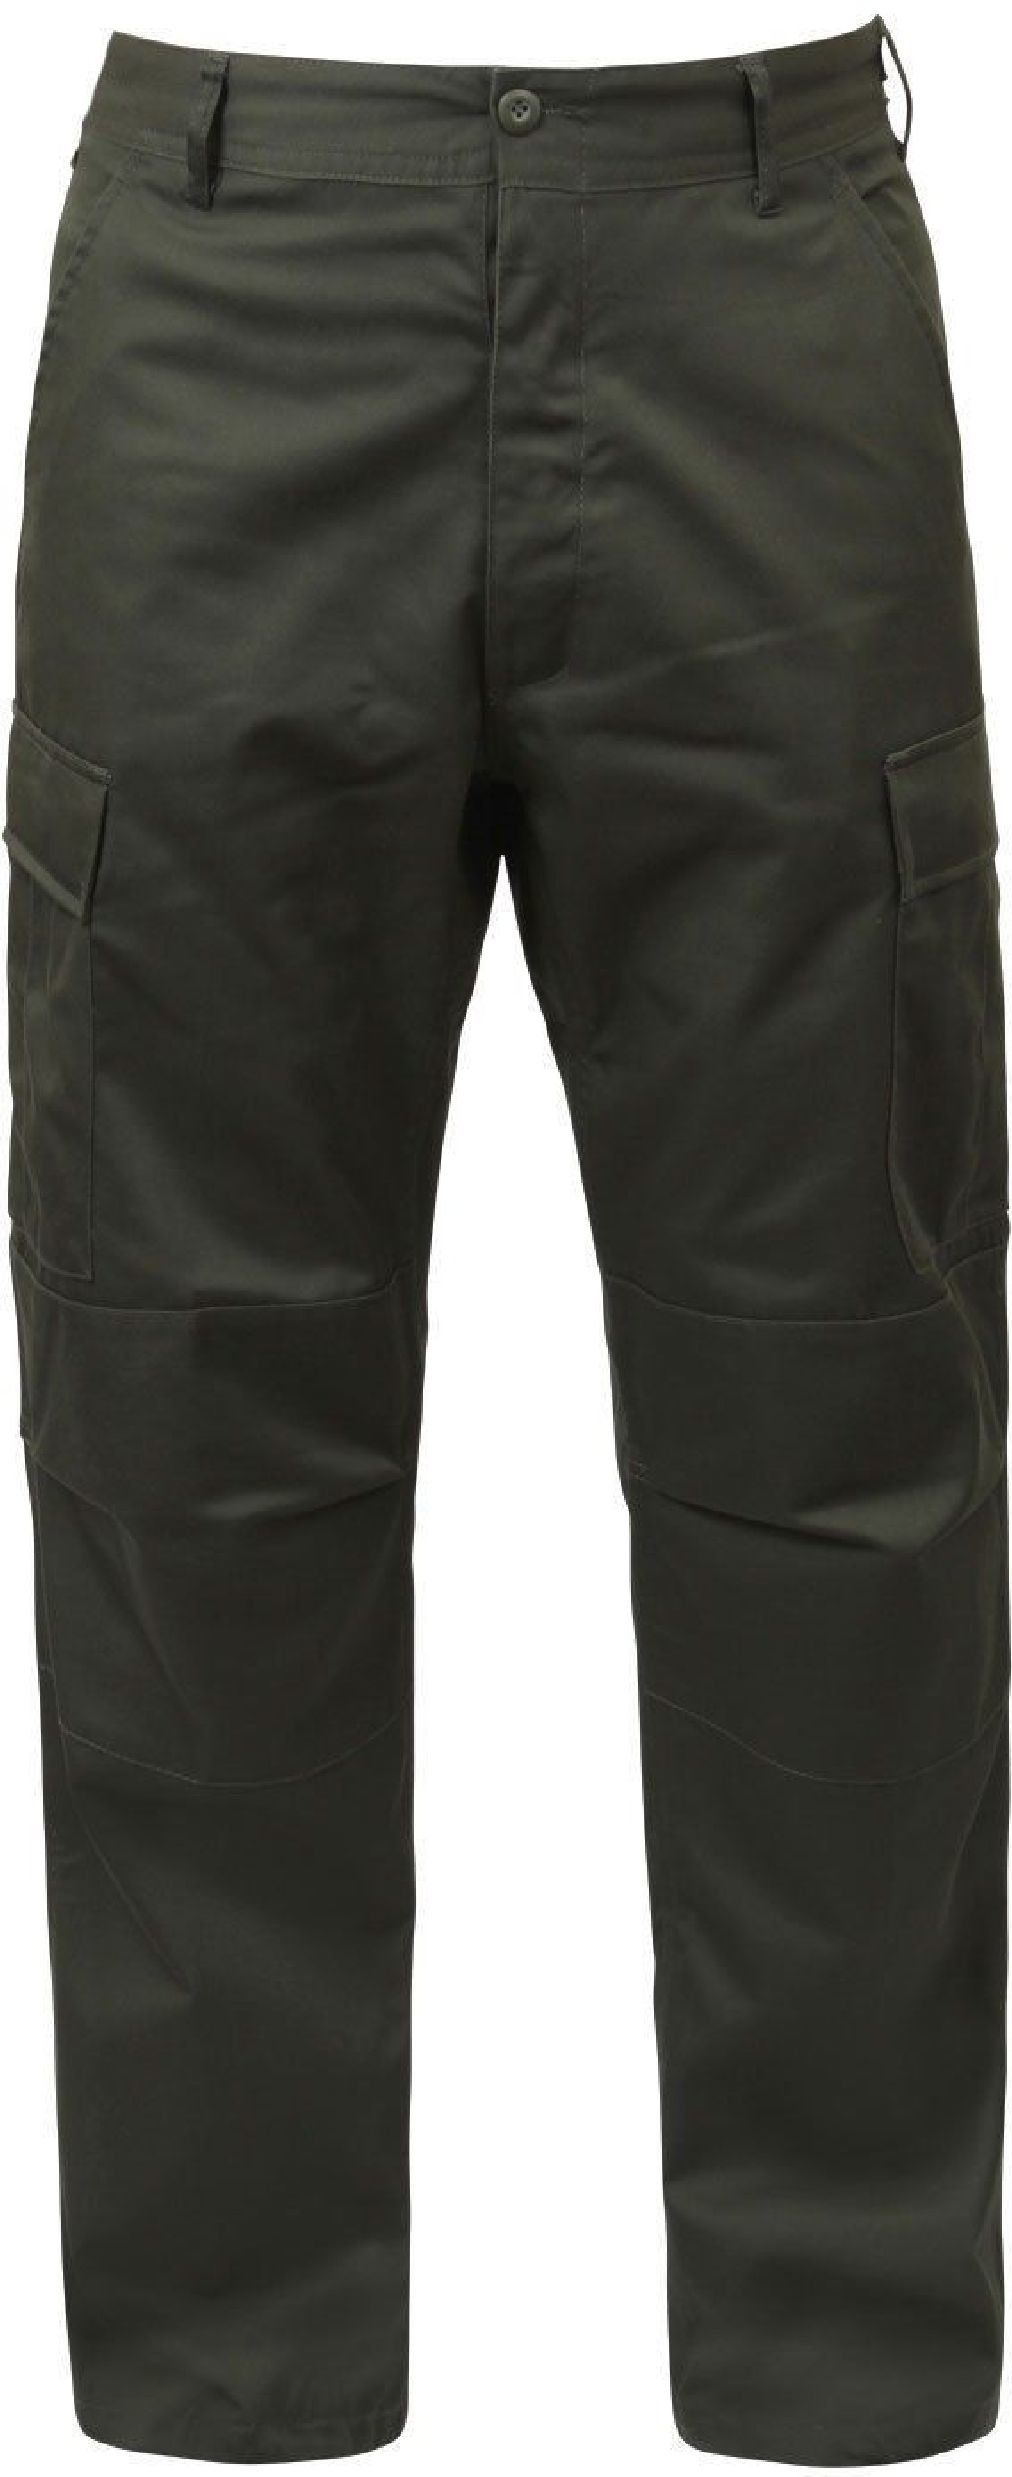 Mens Olive Drab Solid Military BDU Cargo Bottoms Fatigue Trouser Pants by AMYE